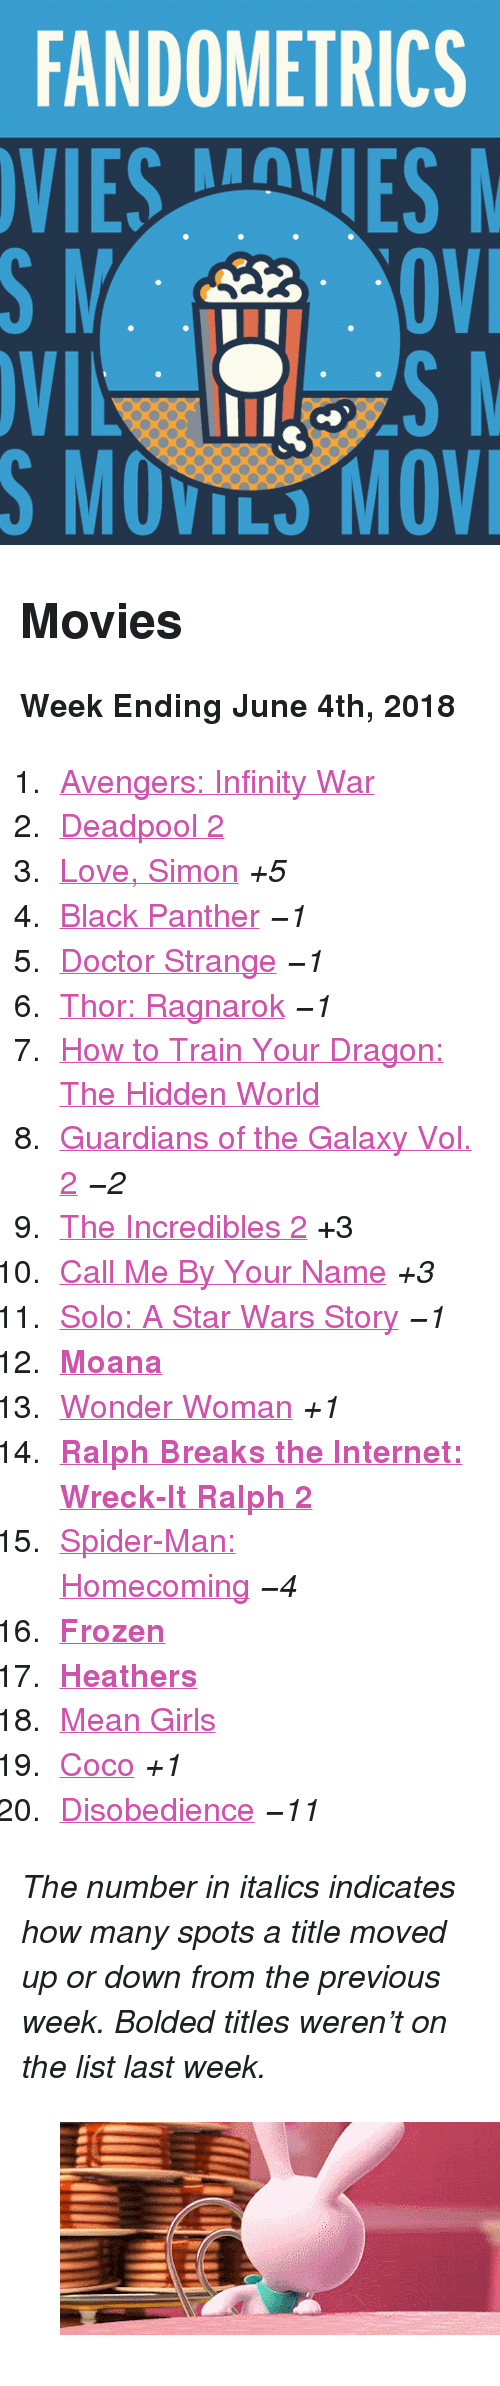 "CoCo, Doctor, and Frozen: FANDOMETRICS  SMOVILS MOV <h2>Movies</h2><p><b>Week Ending June 4th, 2018</b></p><ol><li><a href=""http://www.tumblr.com/search/infinity%20war"">Avengers: Infinity War</a></li>  <li><a href=""http://www.tumblr.com/search/deadpool"">Deadpool 2</a></li>  <li><a href=""http://www.tumblr.com/search/love%20simon"">Love, Simon</a> <i>+5</i></li>  <li><a href=""http://www.tumblr.com/search/black%20panther"">Black Panther</a> <i><i>−1</i></i></li>  <li><a href=""http://www.tumblr.com/search/doctor%20strange"">Doctor Strange</a> <i><i>−1</i></i></li>  <li><a href=""http://www.tumblr.com/search/thor%20ragnarok"">Thor: Ragnarok</a> <i><i>−1</i></i></li>  <li><a href=""http://www.tumblr.com/search/httyd"">How to Train Your Dragon: The Hidden World</a></li>  <li><a href=""http://www.tumblr.com/search/guardians%20of%20the%20galaxy"">Guardians of the Galaxy Vol. 2</a> <i><i>−2</i></i></li>  <li><a href=""http://www.tumblr.com/search/the%20incredibles"">The Incredibles 2</a> +3</li>  <li><a href=""http://www.tumblr.com/search/call%20me%20by%20your%20name"">Call Me By Your Name</a> <i>+3</i></li>  <li><a href=""http://www.tumblr.com/search/solo%20a%20star%20wars%20story"">Solo: A Star Wars Story</a> <i><i>−1</i></i></li>  <li><a href=""http://www.tumblr.com/search/moana""><b>Moana</b></a></li>  <li><a href=""http://www.tumblr.com/search/wonder%20woman"">Wonder Woman</a> <i>+1</i></li>  <li><a href=""http://www.tumblr.com/search/wreck%20it%20ralph""><b>Ralph Breaks the Internet: Wreck-It Ralph 2</b></a></li>  <li><a href=""http://www.tumblr.com/search/spiderman%20homecoming"">Spider-Man: Homecoming</a> <i><i>−4</i></i></li>  <li><a href=""http://www.tumblr.com/search/frozen""><b>Frozen</b></a></li>  <li><a href=""http://www.tumblr.com/search/heathers""><b>Heathers</b></a></li>  <li><a href=""http://www.tumblr.com/search/mean%20girls"">Mean Girls</a></li>  <li><a href=""http://www.tumblr.com/search/coco"">Coco</a> <i>+1</i></li><li><a href=""http://www.tumblr.com/search/disobedience"">Disobedience</a> <i><i>−11</i></i></li></ol><p><i>The number in italics indicates how many spots a title moved up or down from the previous week. Bolded titles weren't on the list last week.</i></p><figure data-orig-width=""500"" data-orig-height=""213"" data-tumblr-attribution=""splashgifs:ezto0kz6OnZ0BXg9N-MrVA:ZEXAme2VdRlHE"" class=""tmblr-full""><img src=""https://78.media.tumblr.com/9dcfaab8bcdce1a71955448dfadc48d8/tumblr_p4vjjynCqC1w4nh3lo1_500.gifv"" alt=""image"" data-orig-width=""500"" data-orig-height=""213""/></figure>"